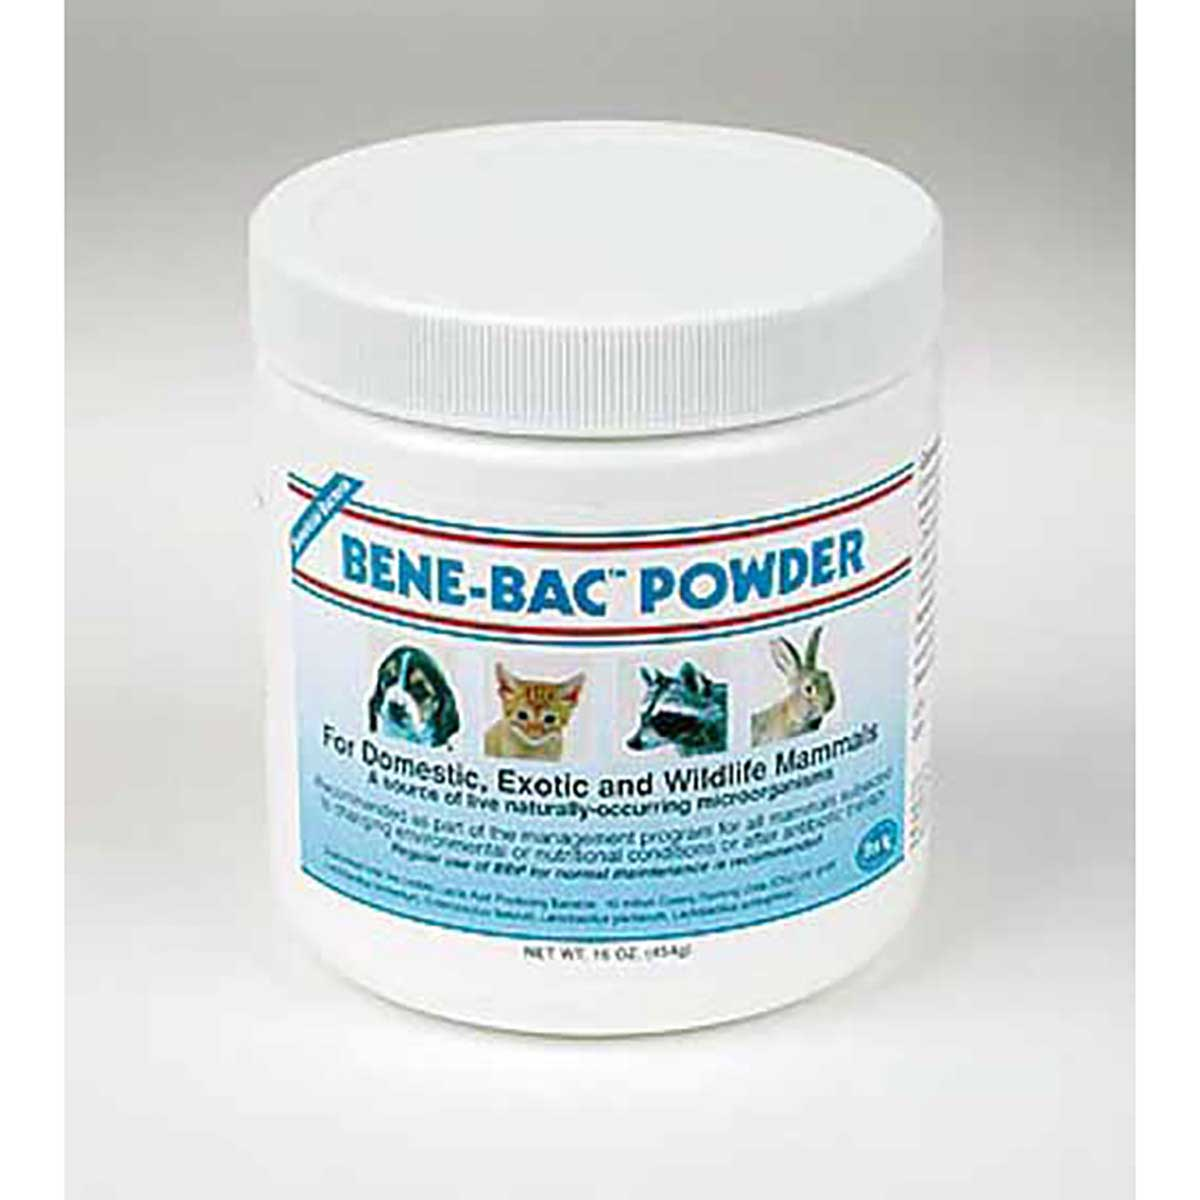 PetAg Bene-Bac Pet Powder for Domestic, Exotic and Wildlife Animals - 1 Lb